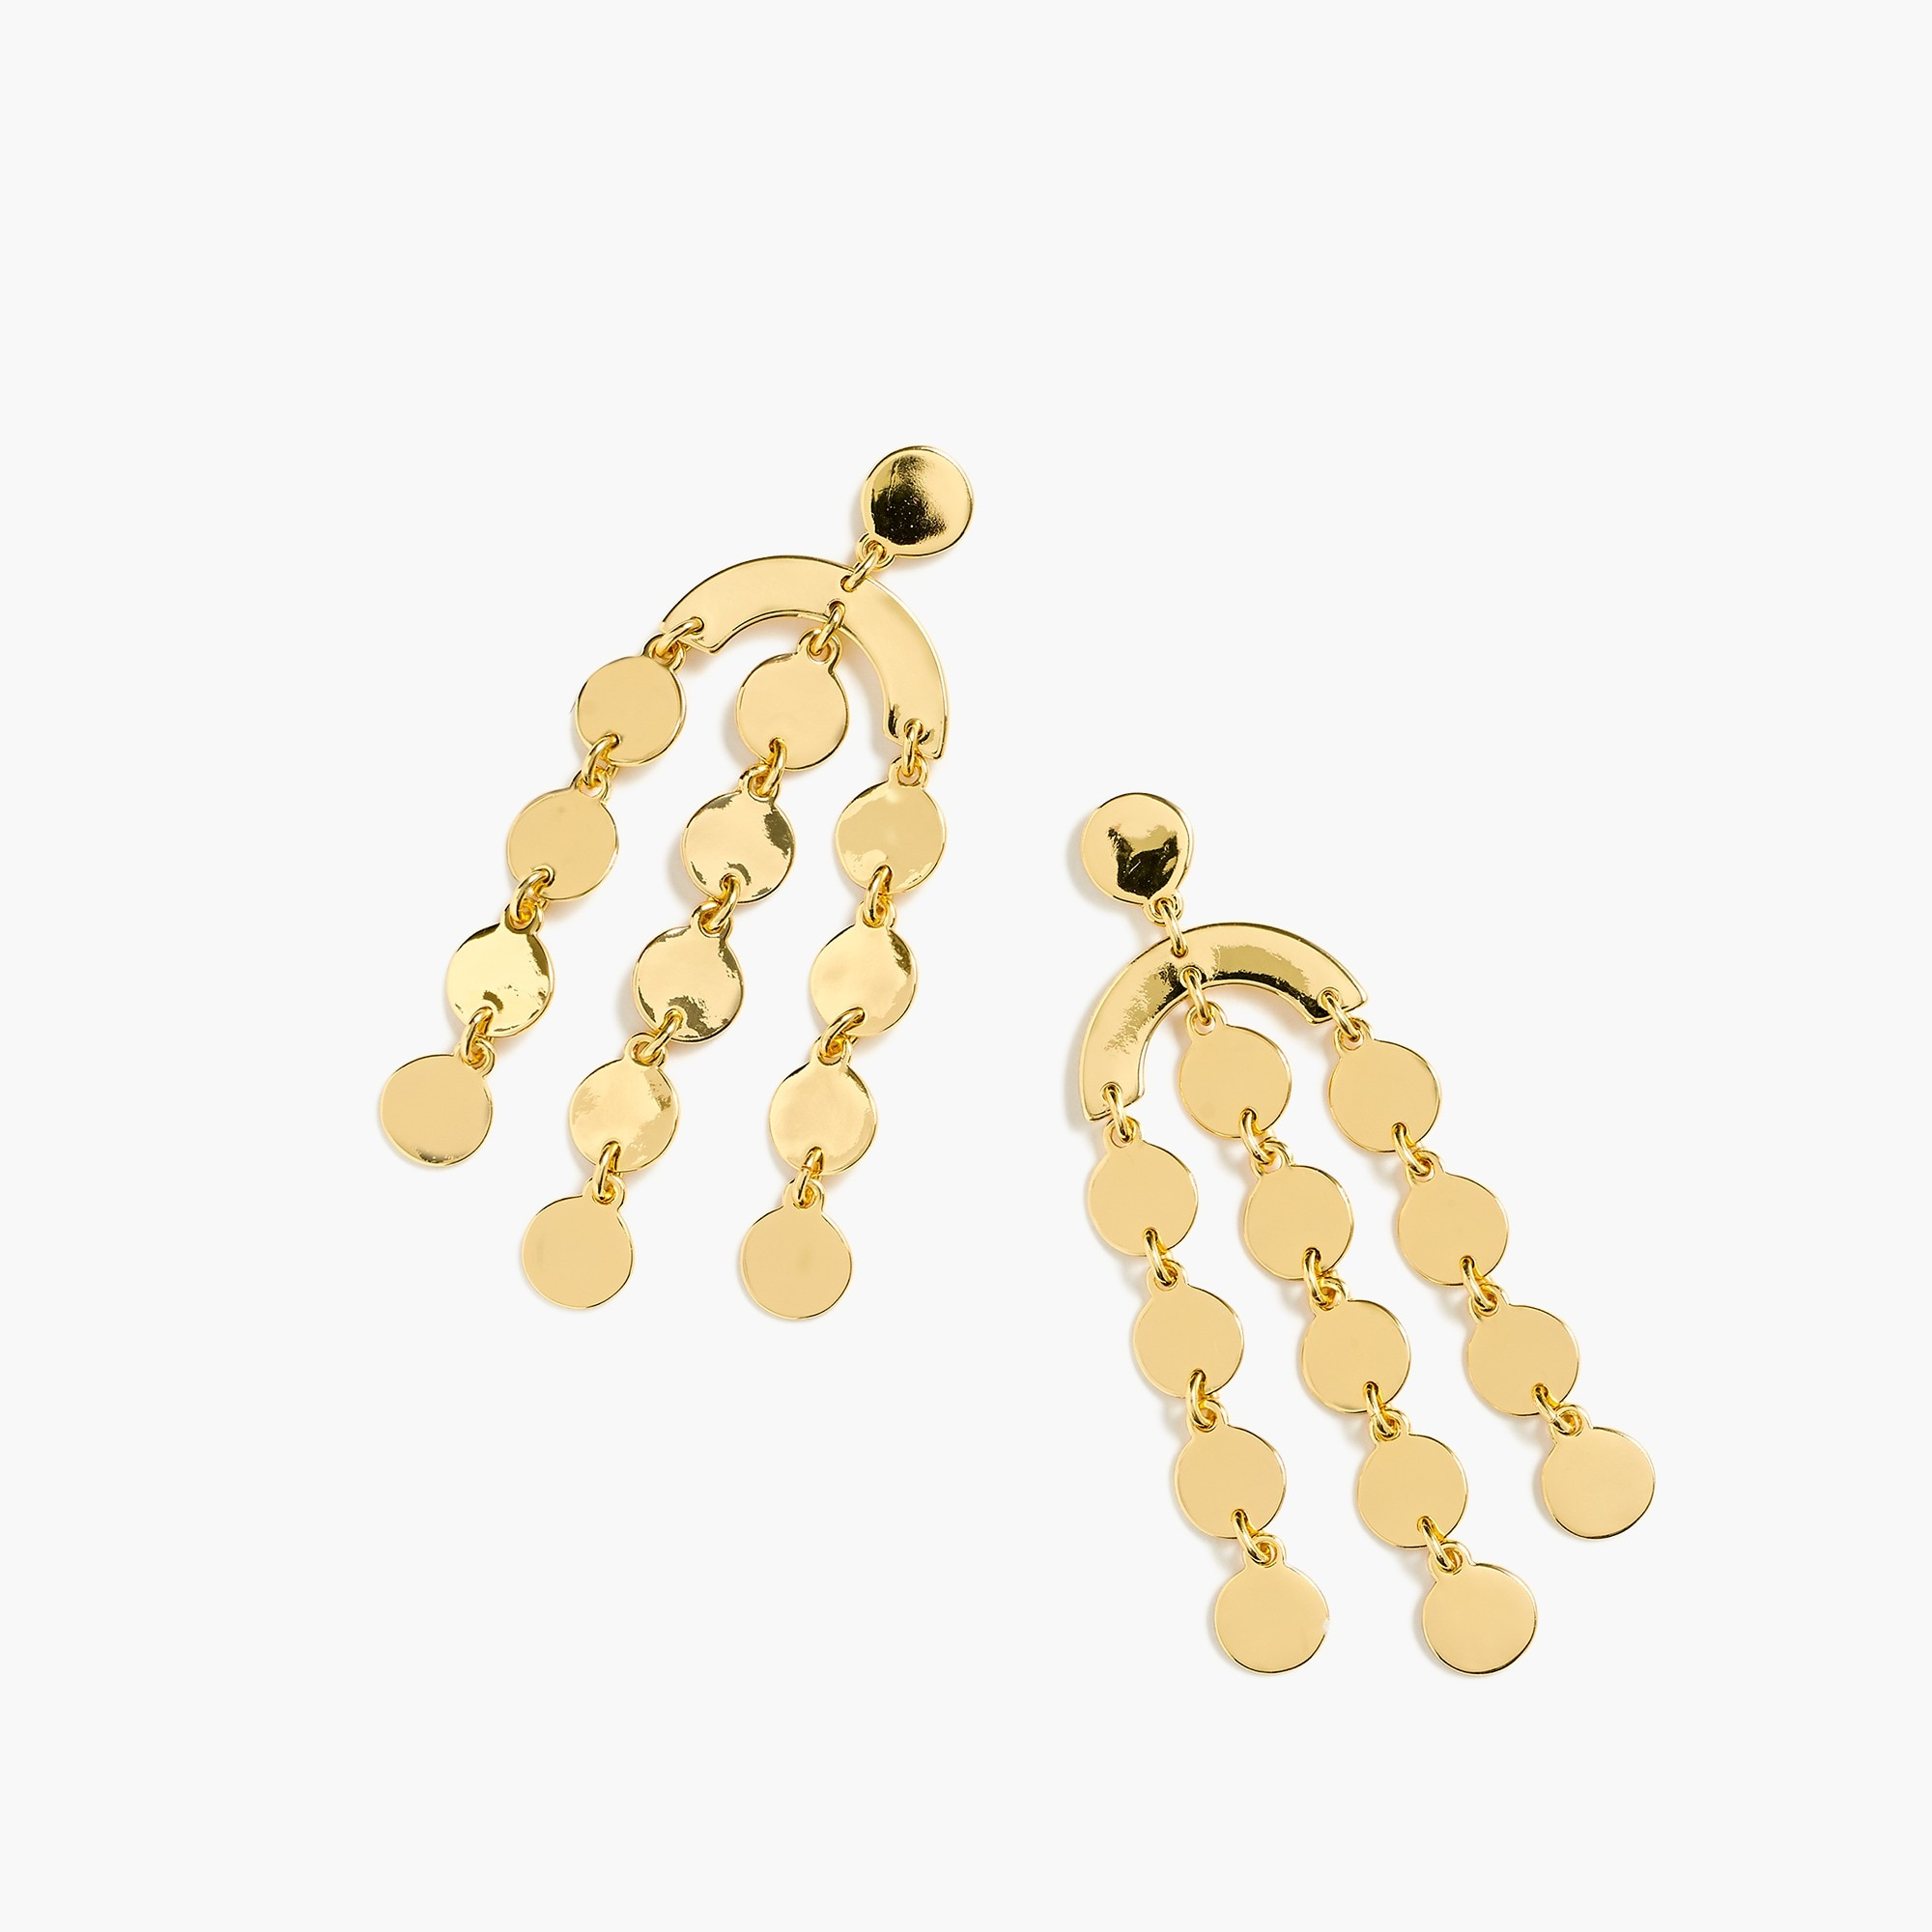 Cascading disc earrings